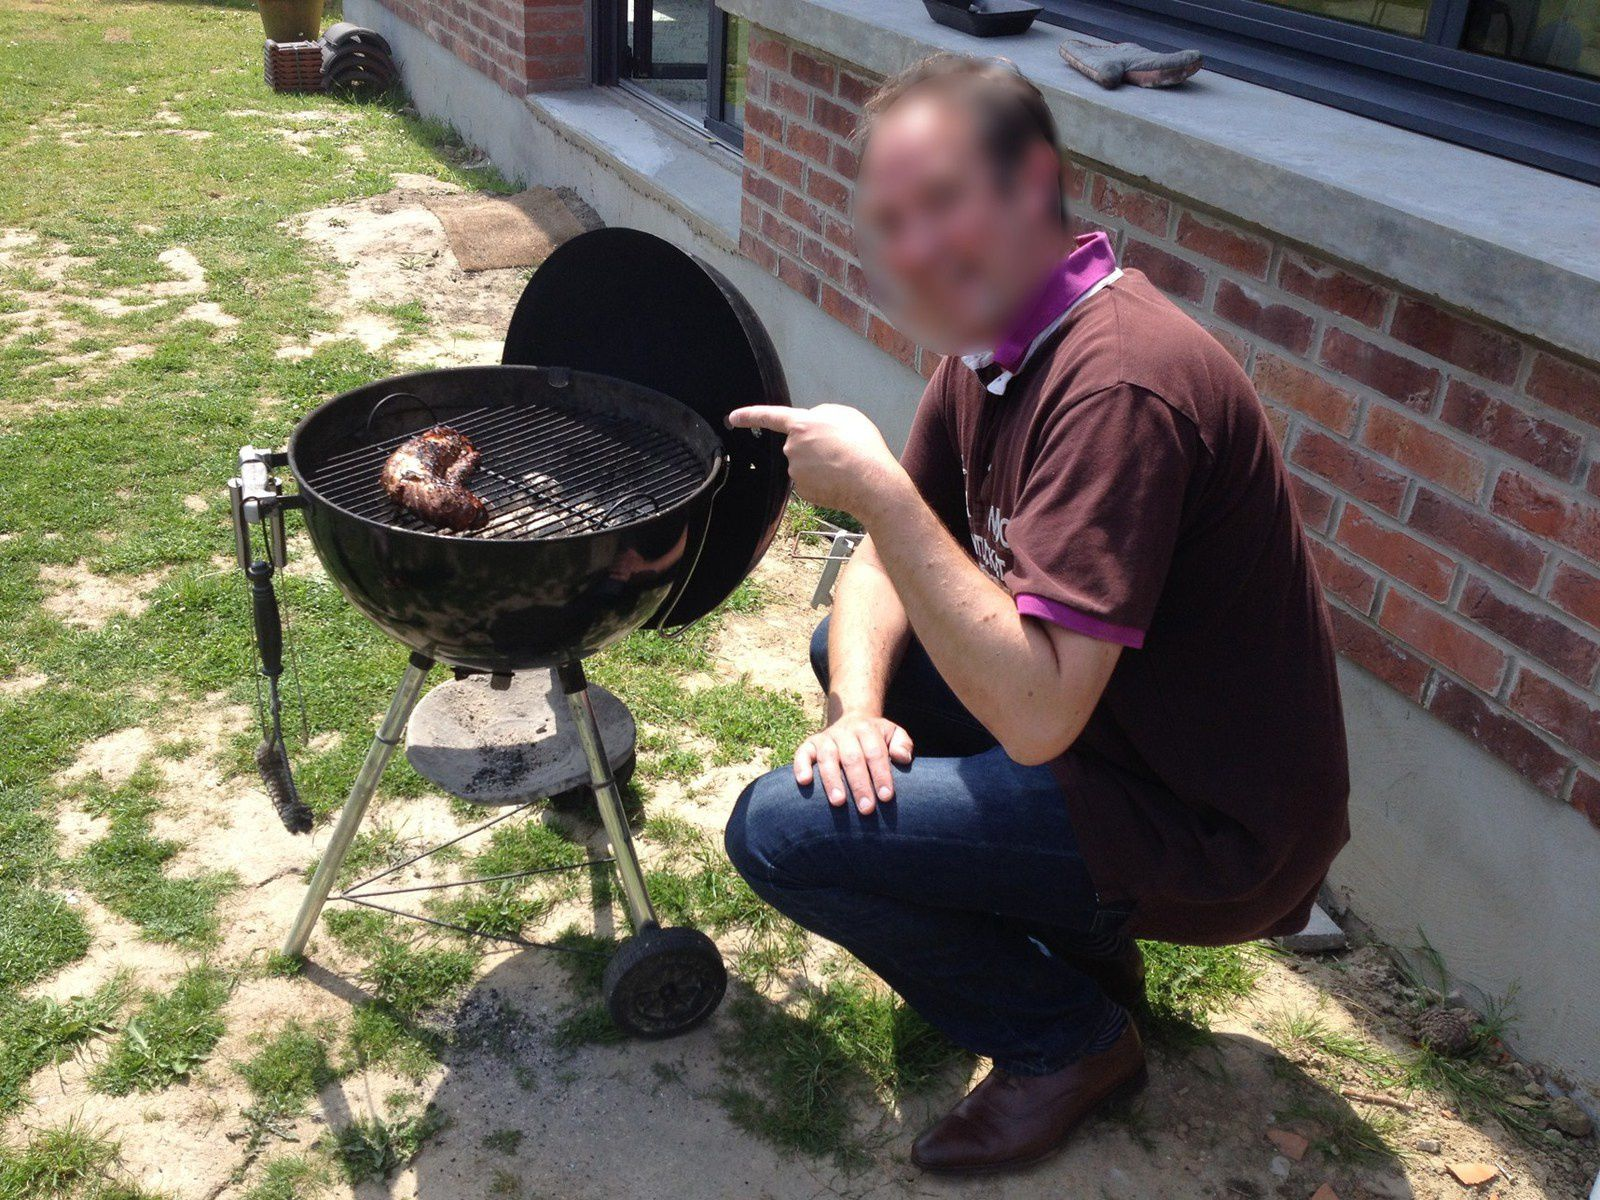 Recette filet mignon caram lis au barbecue fashion maman - Allumer barbecue weber ...